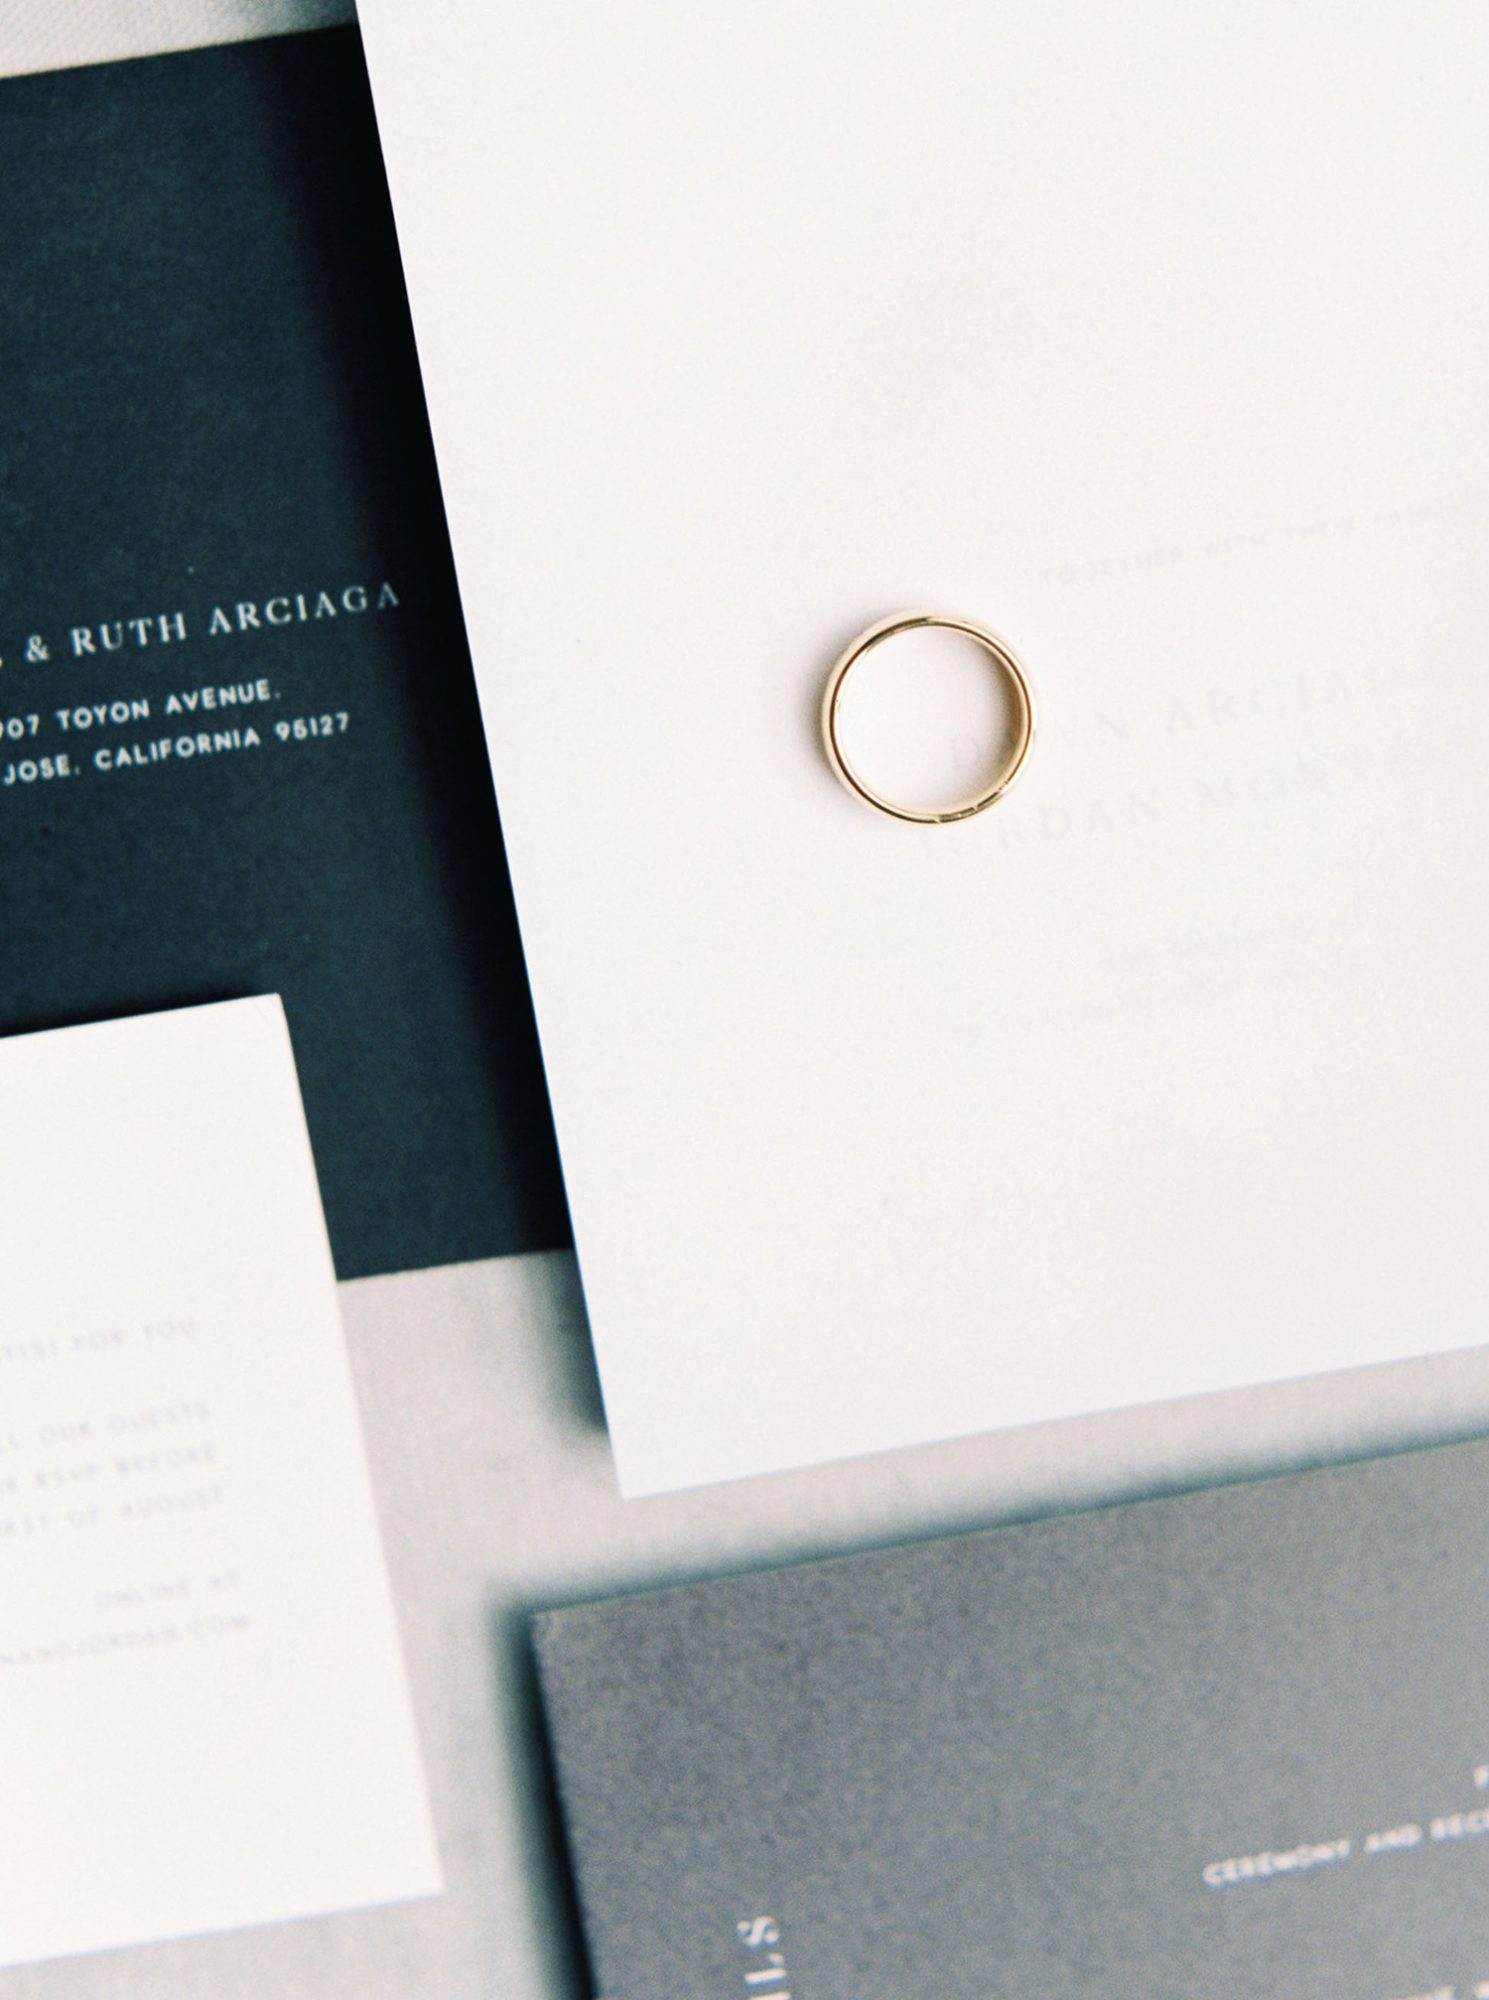 dawn jordan wedding ring and invites